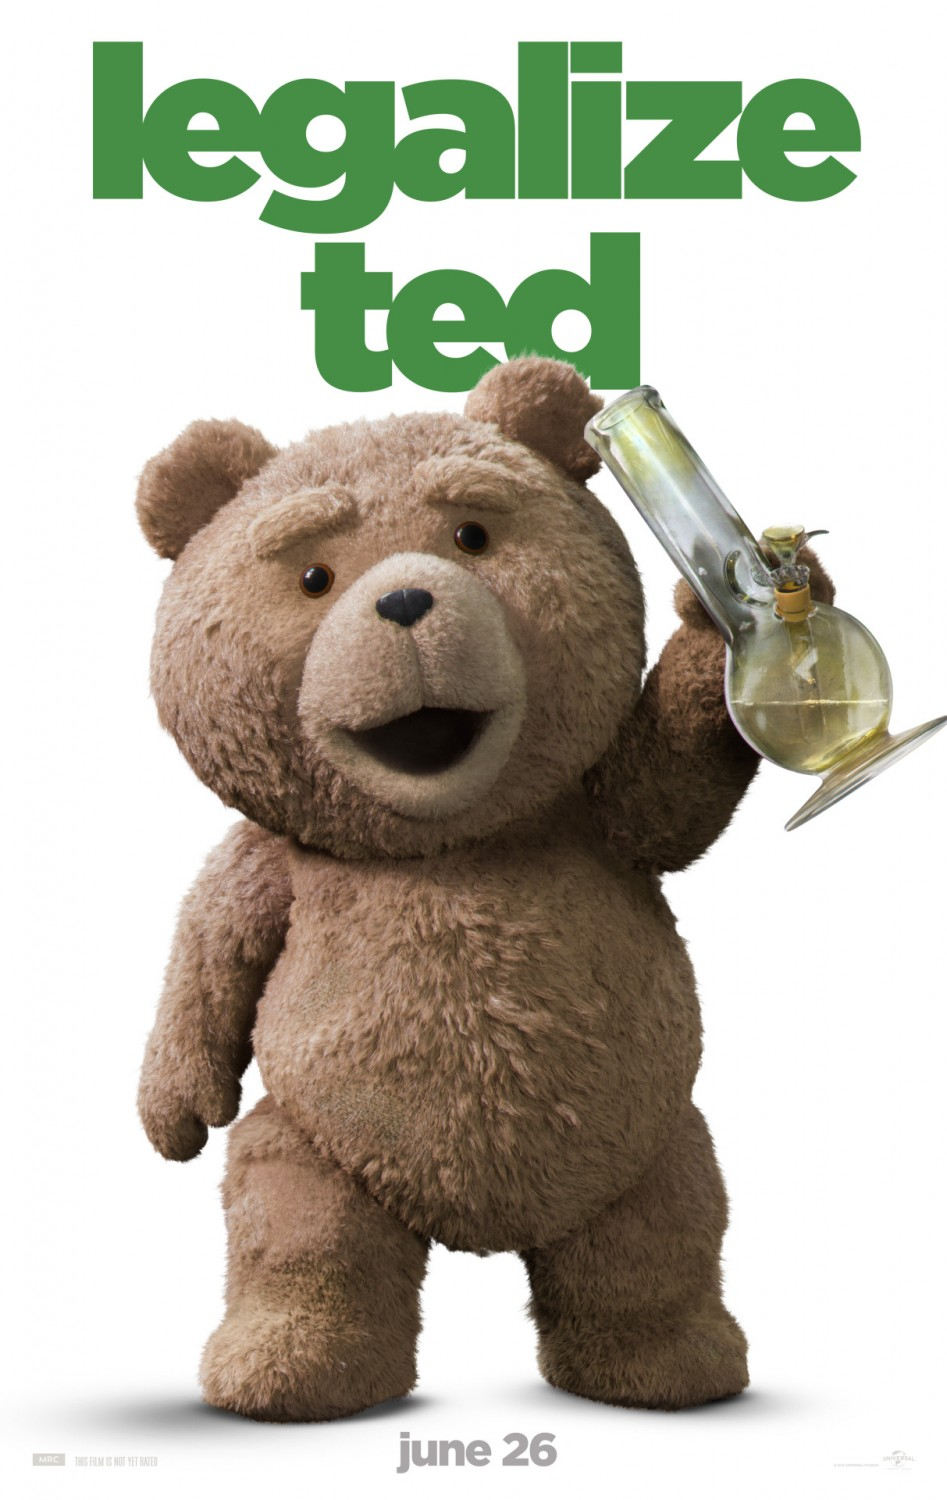 Ted release date in Melbourne